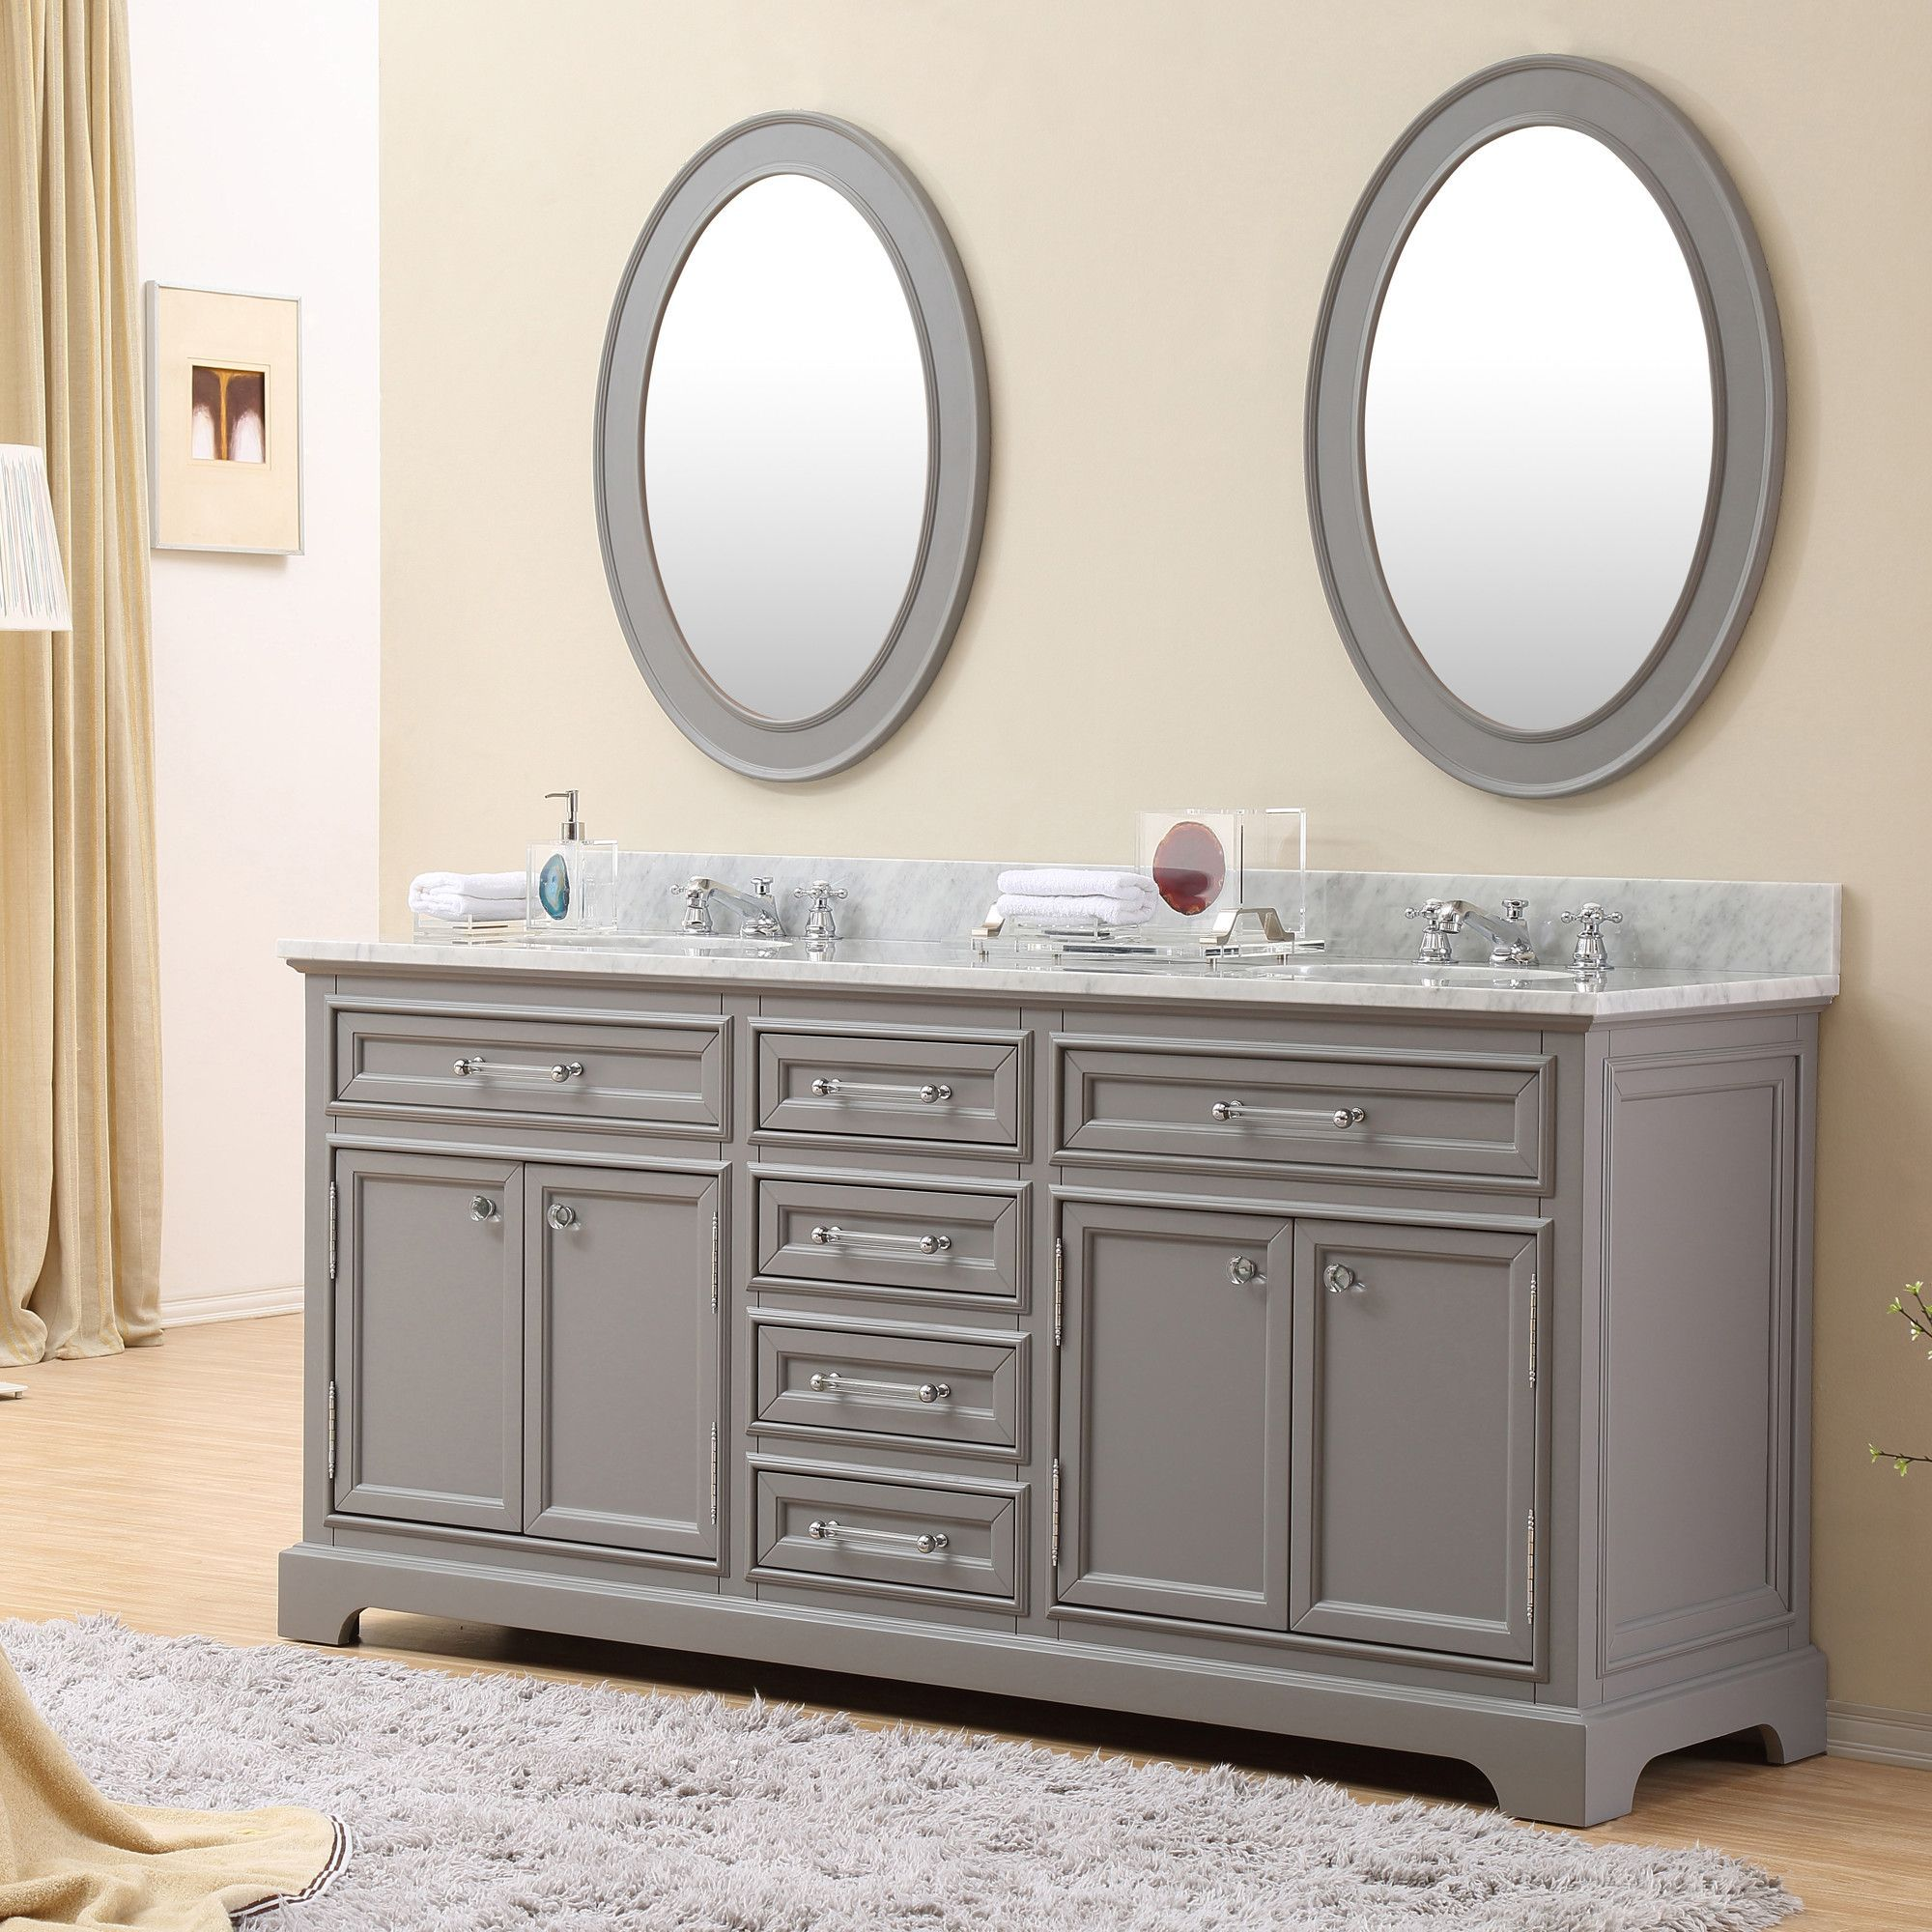 on htsrec com double vanity sink for lovely bathroom photos top perfect